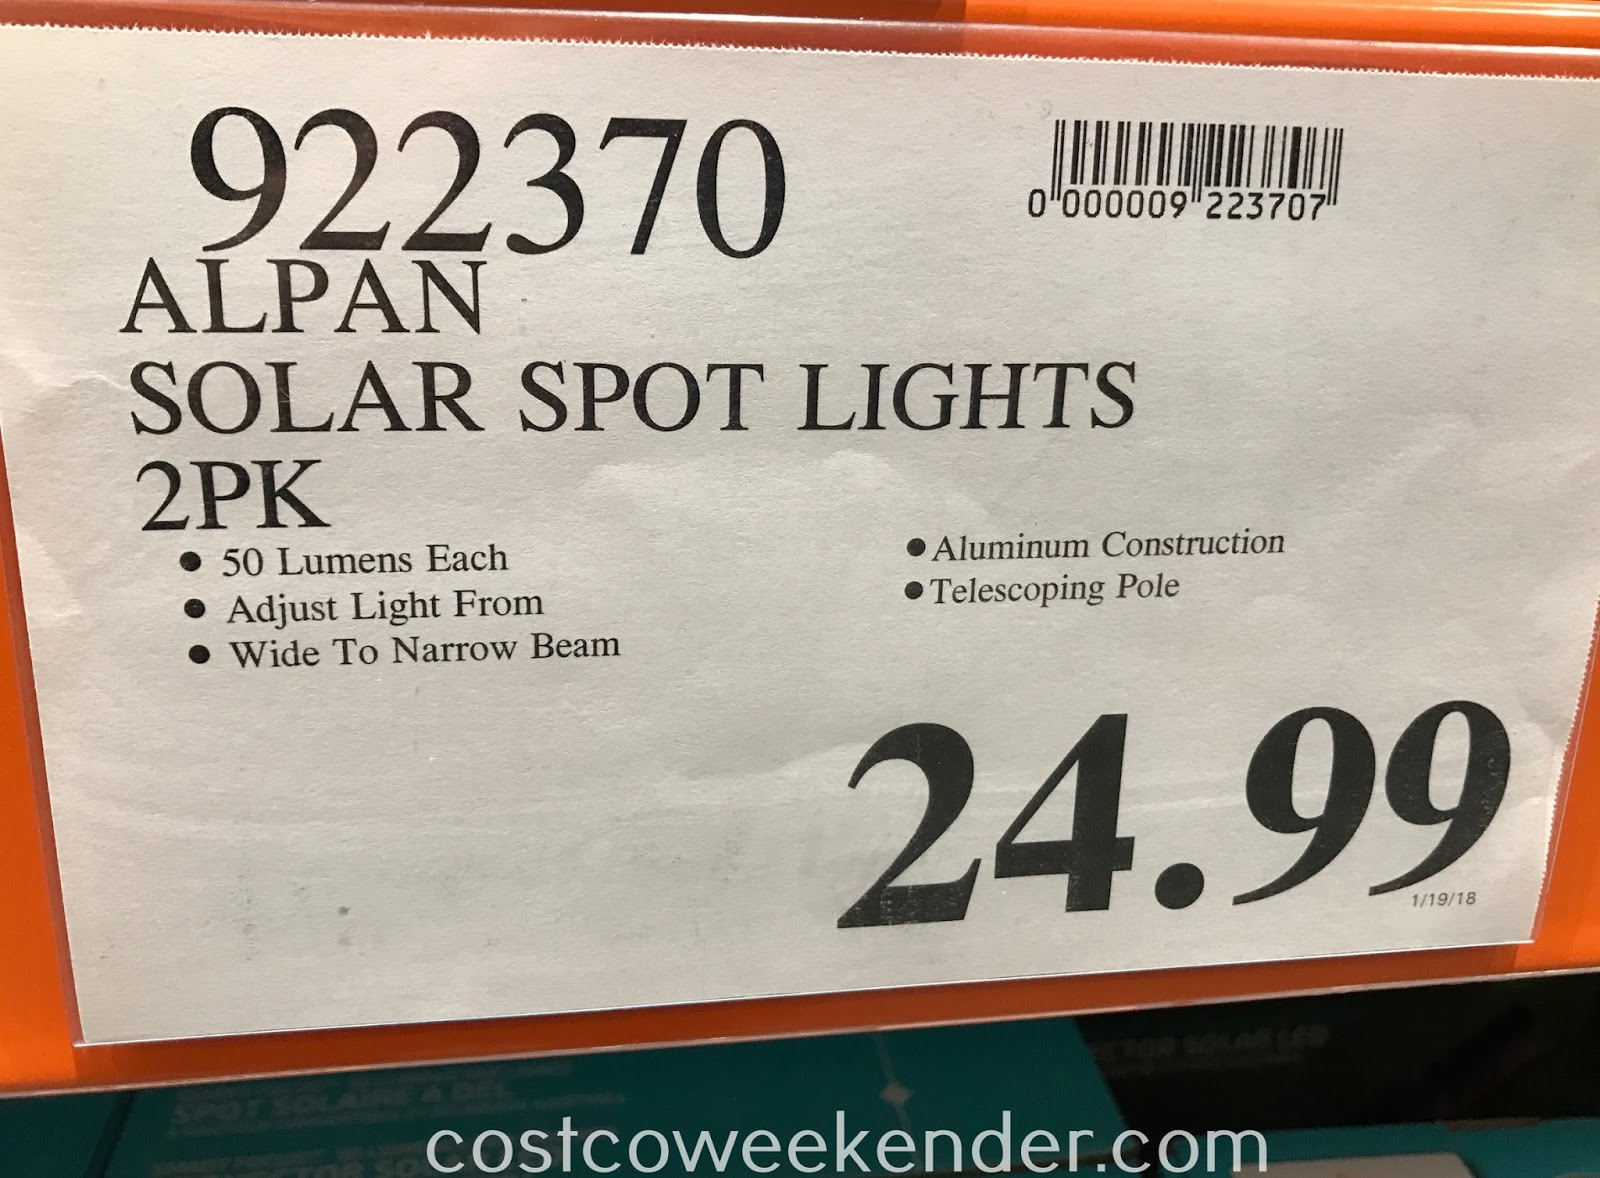 Deal for a pack of 2 Alpan SmartYard Smart Focus LED Solar Spotlights at Costco